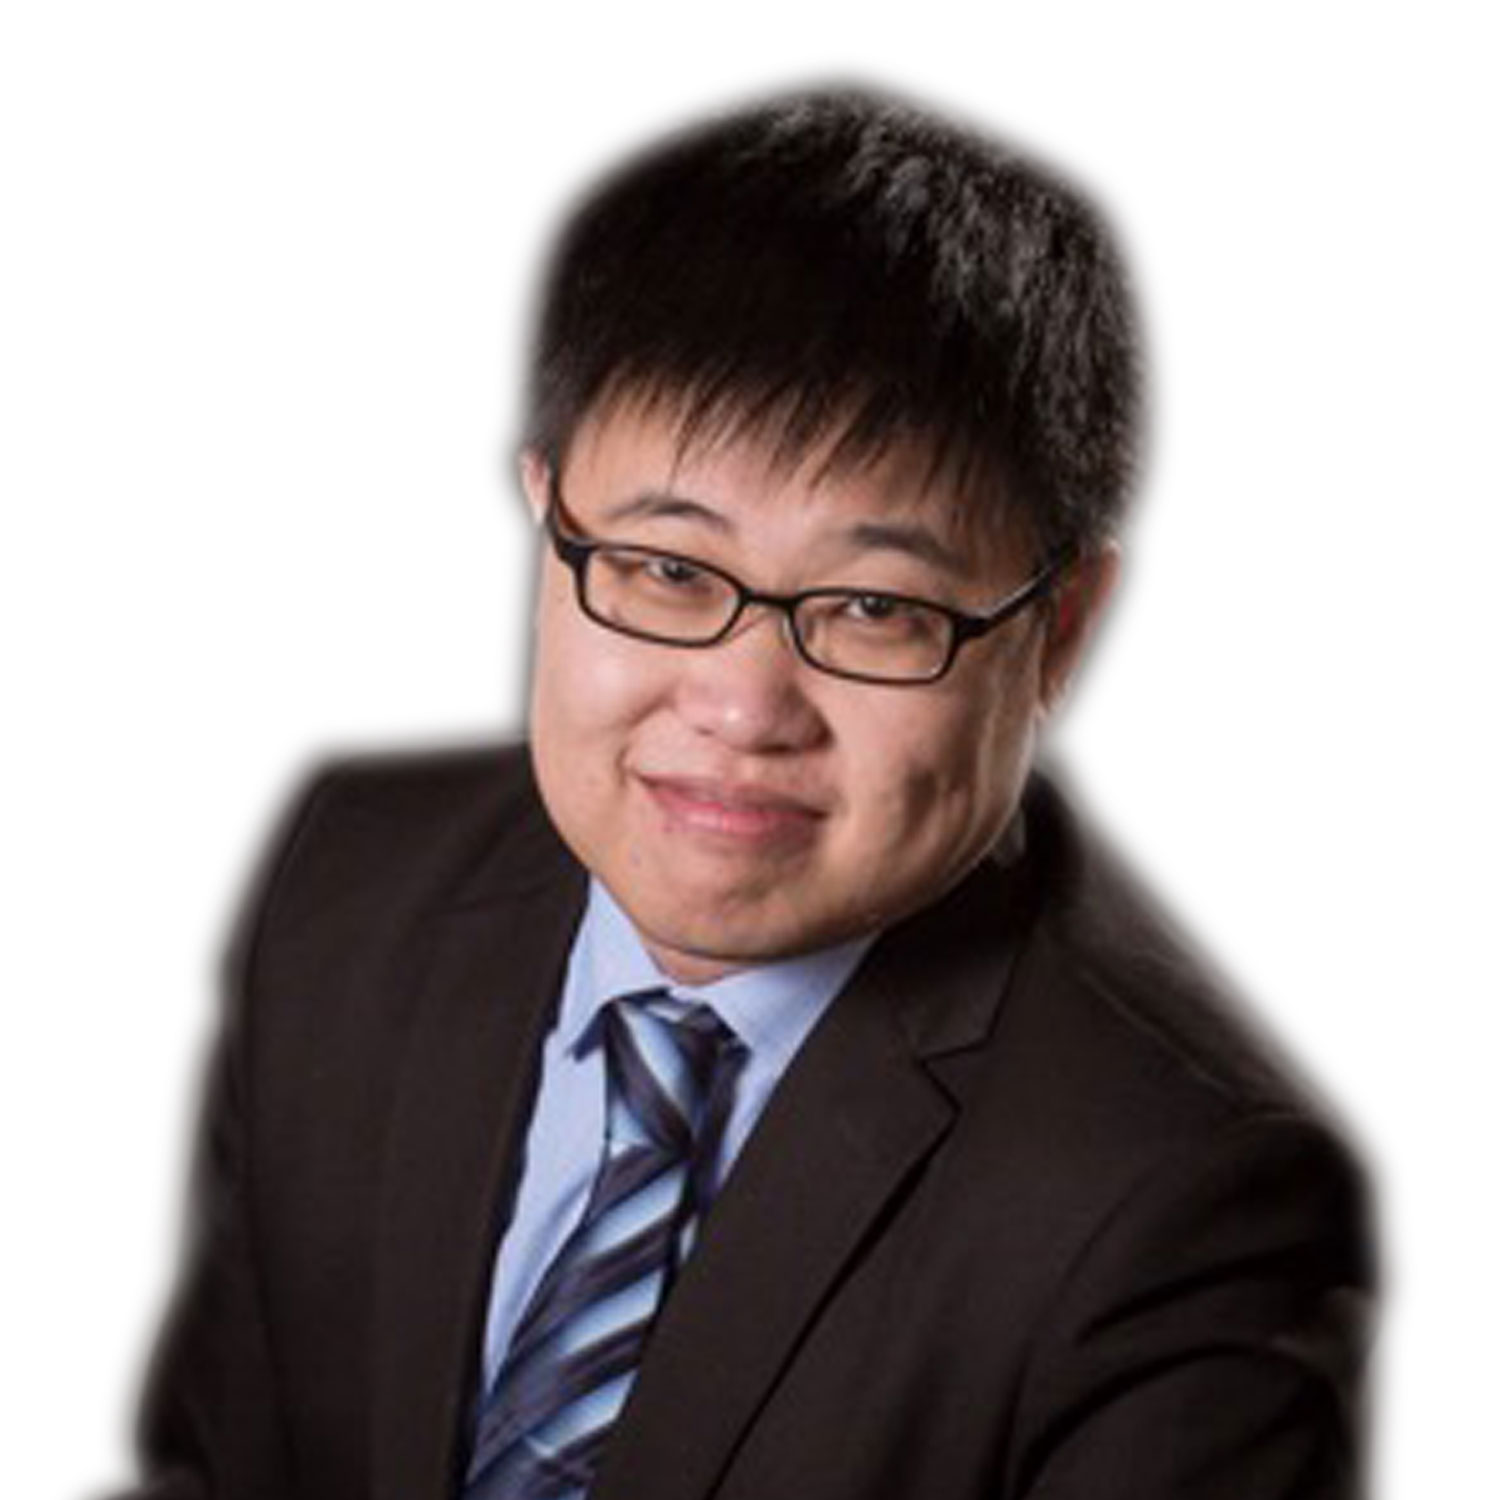 EO Co-founder & CEO Bin Wang